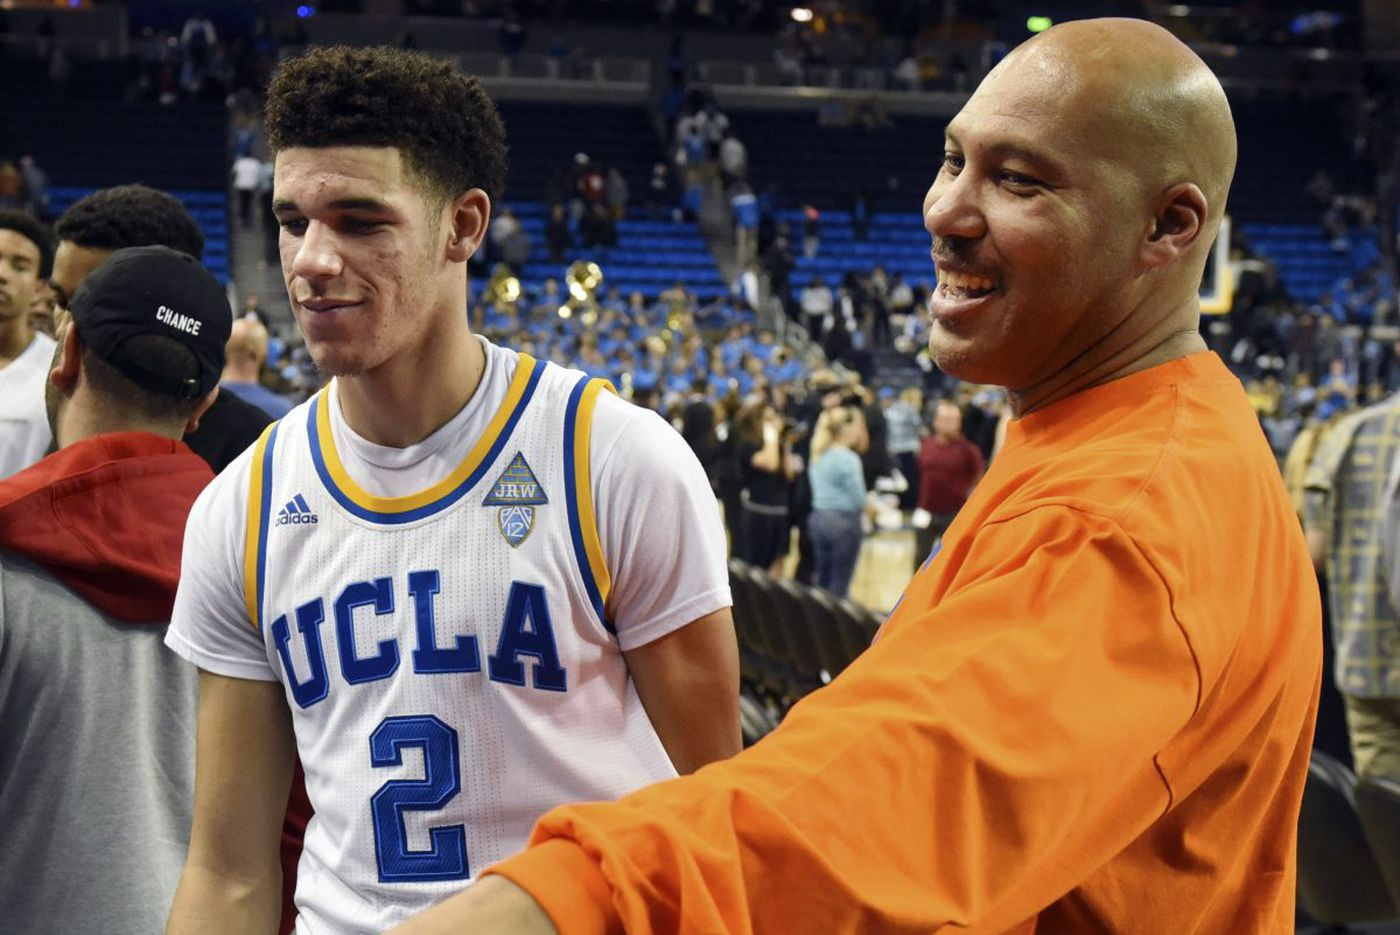 LaVar Ball takes shots at Sixers' Ben Simmons, Joel Embiid and Jerry Colangelo in radio interview